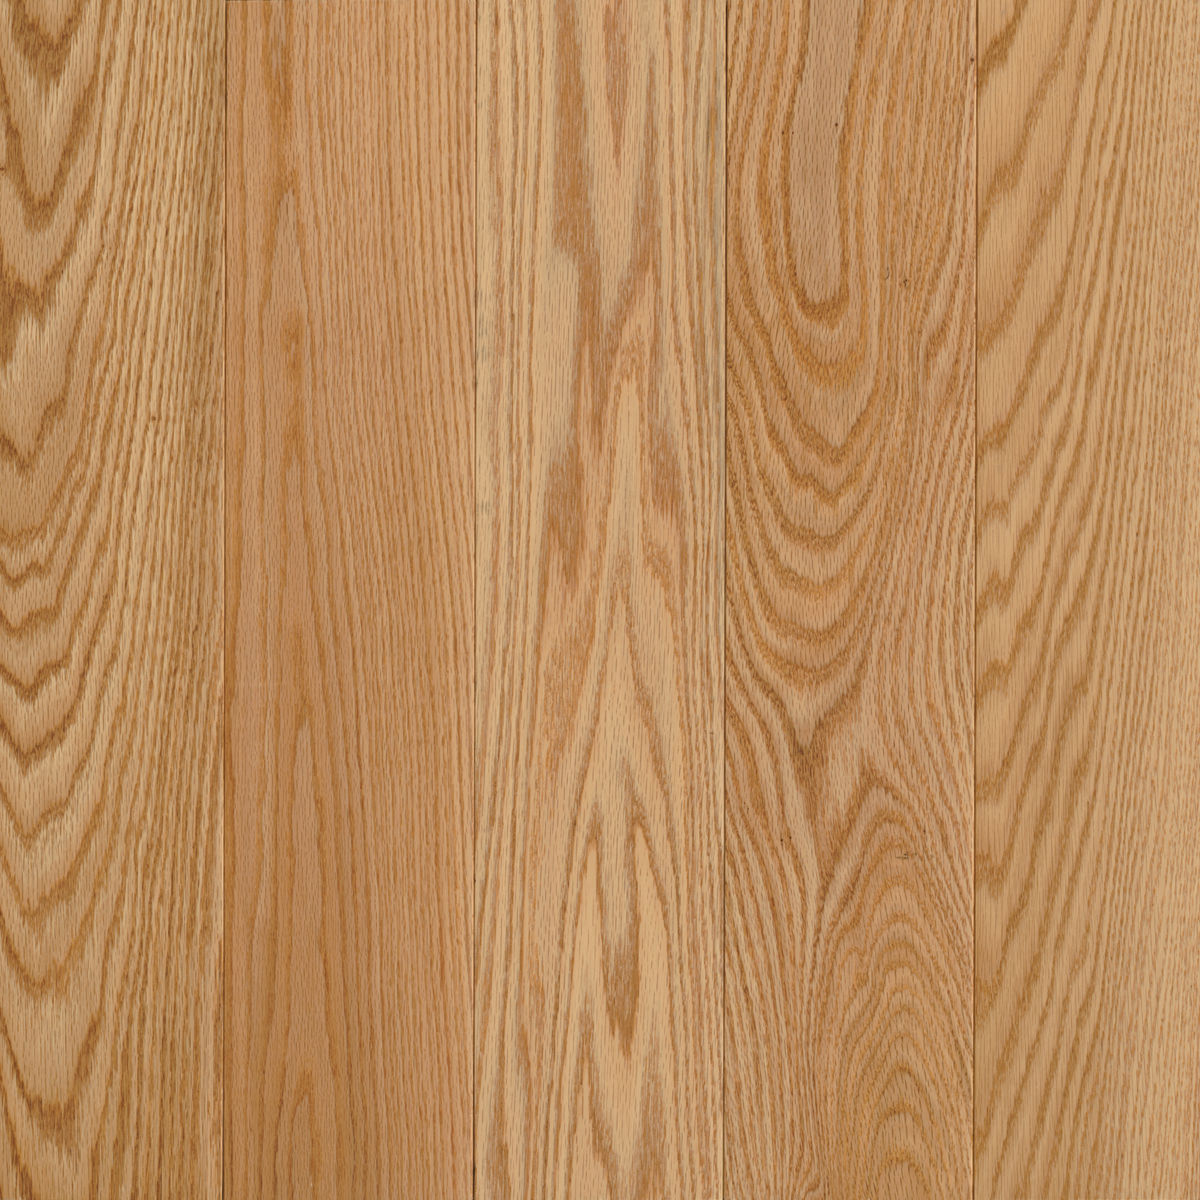 Northern Red Oak 3″